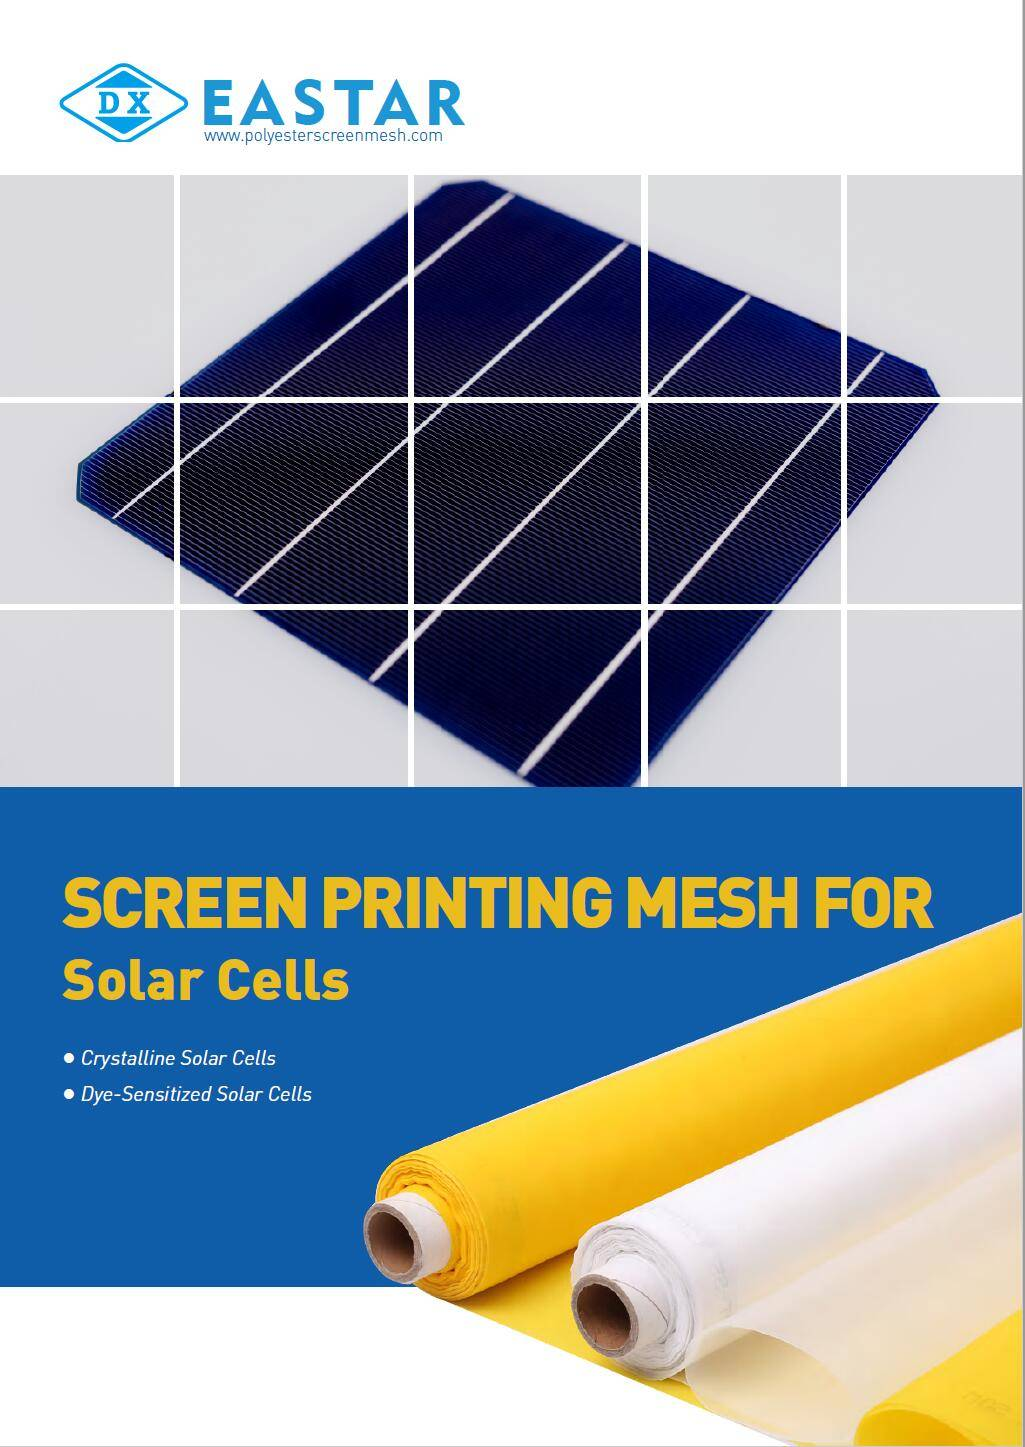 Polyester screen printing mesh for solar cell screen printing.